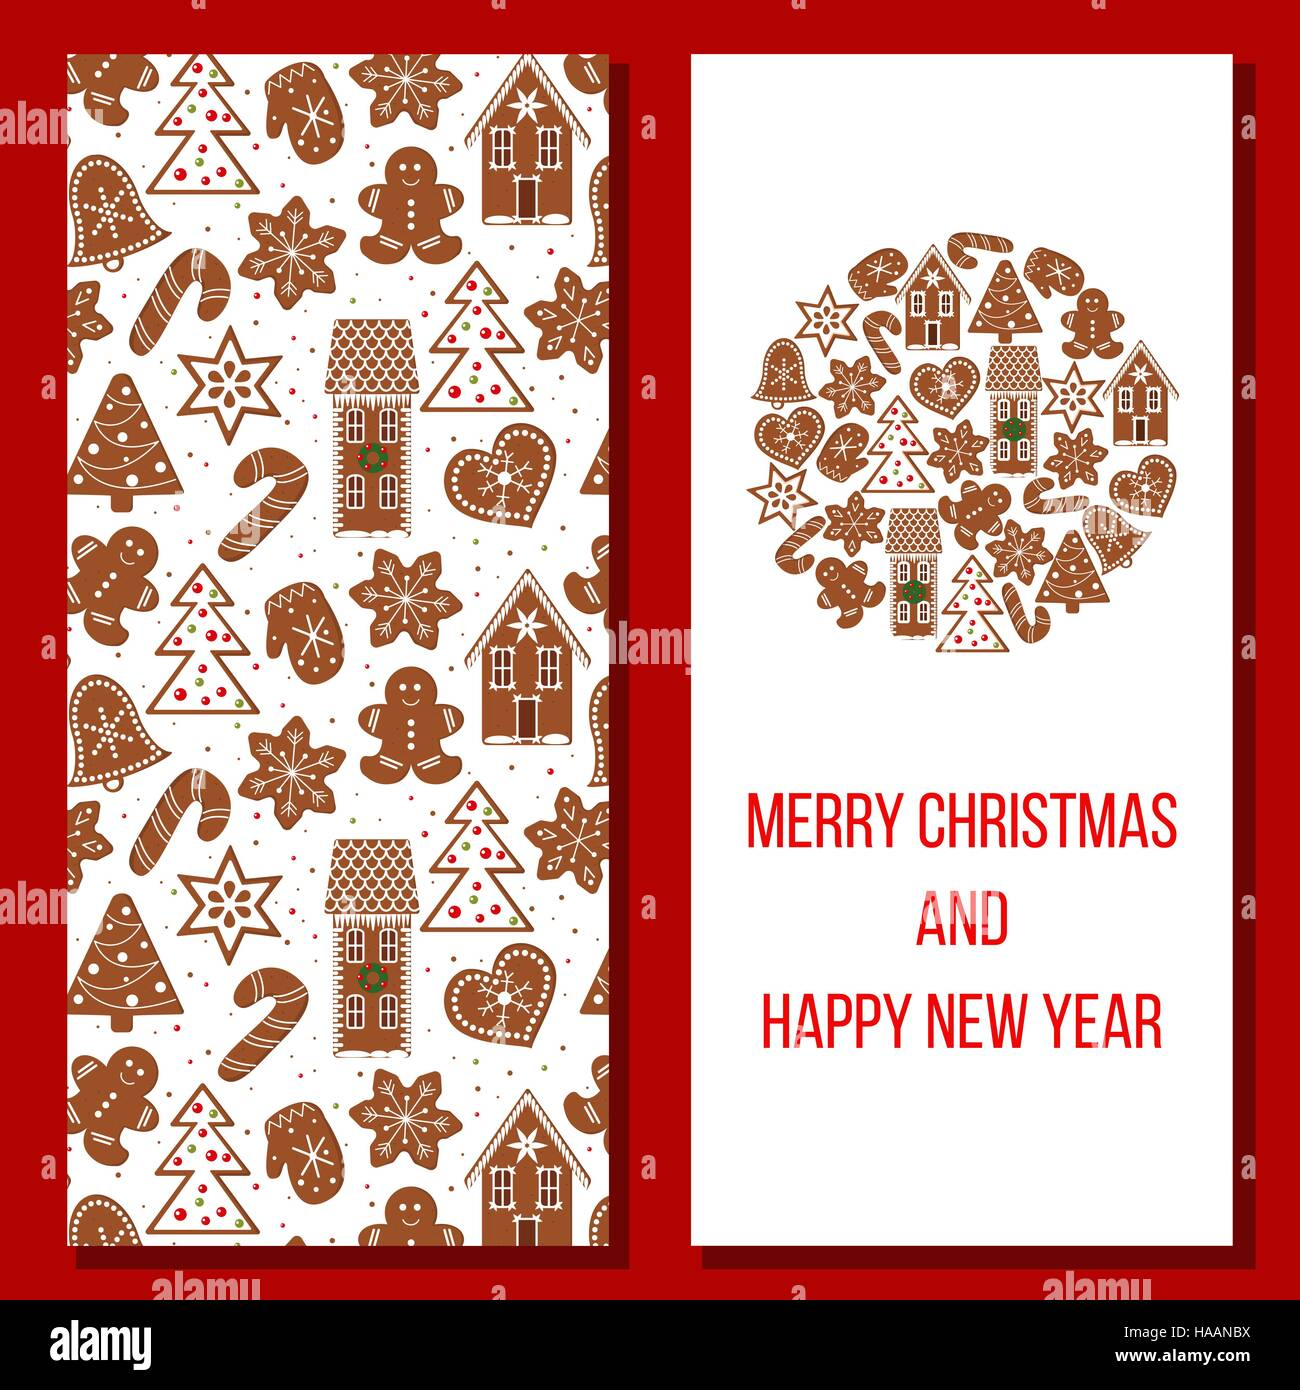 Gingerbread christmas and happy new year greetings set with funny gingerbread christmas and happy new year greetings set with funny figures xmas tree snowflakes cane heart star house hat design elements for p kristyandbryce Image collections